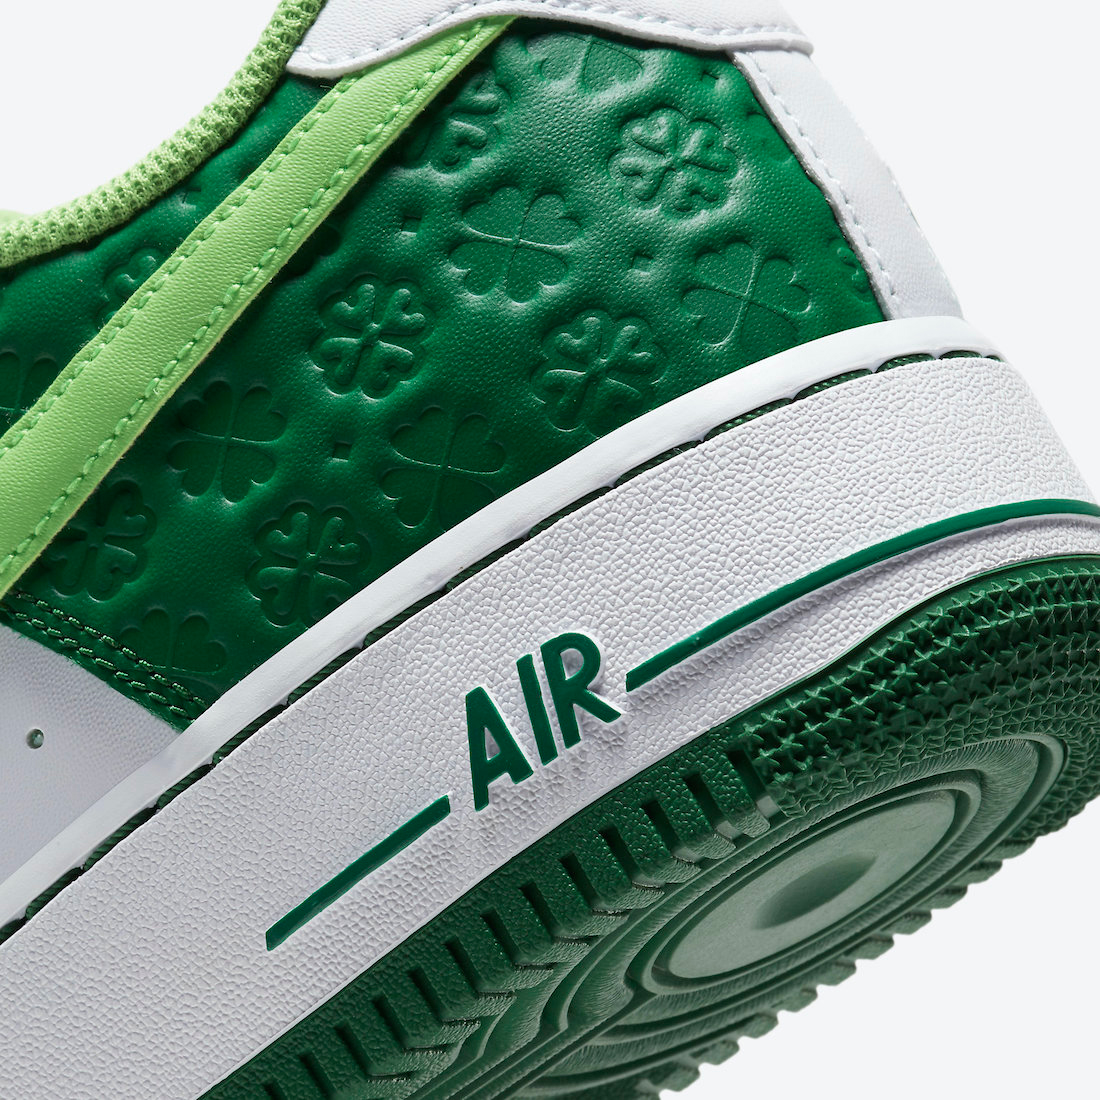 nike-air-force-1-st-patricks-day-2021-release-date-price-resell-where-to-buy-9